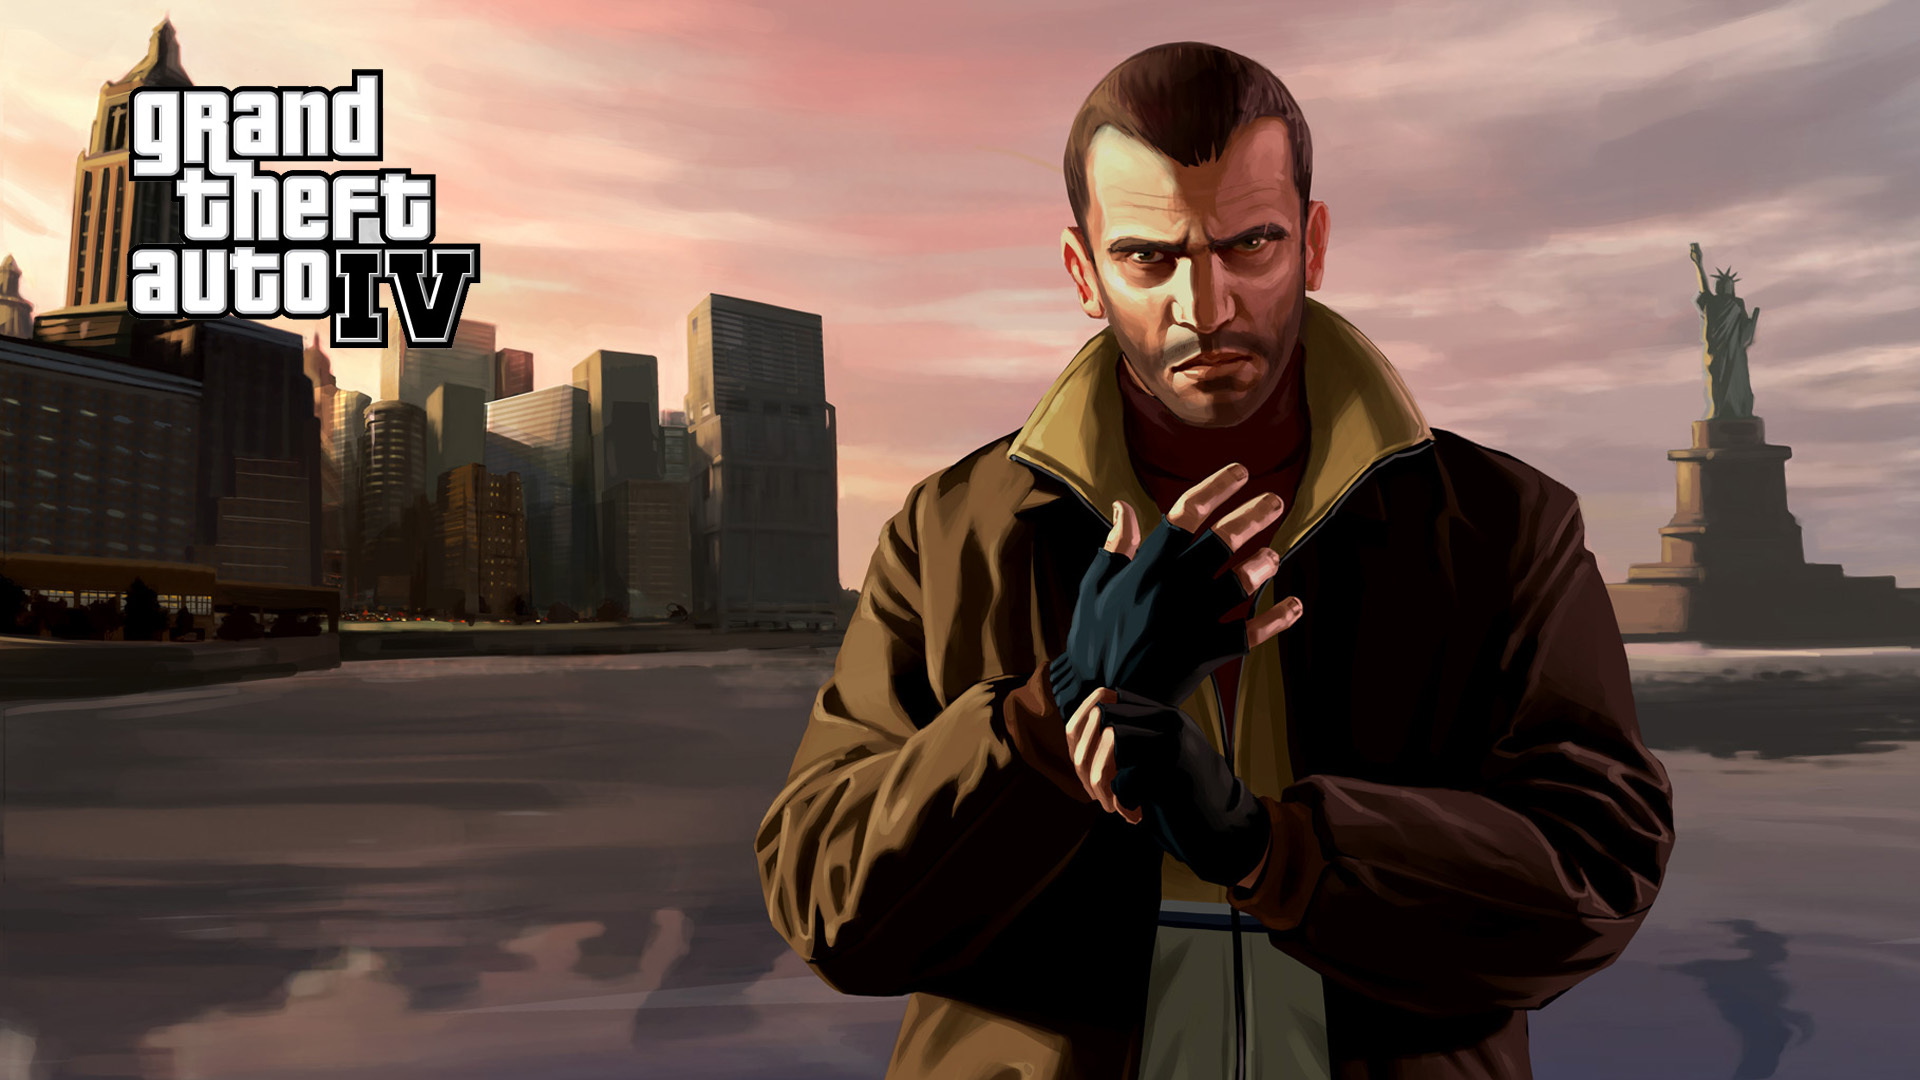 gta iv wallpaper 231055